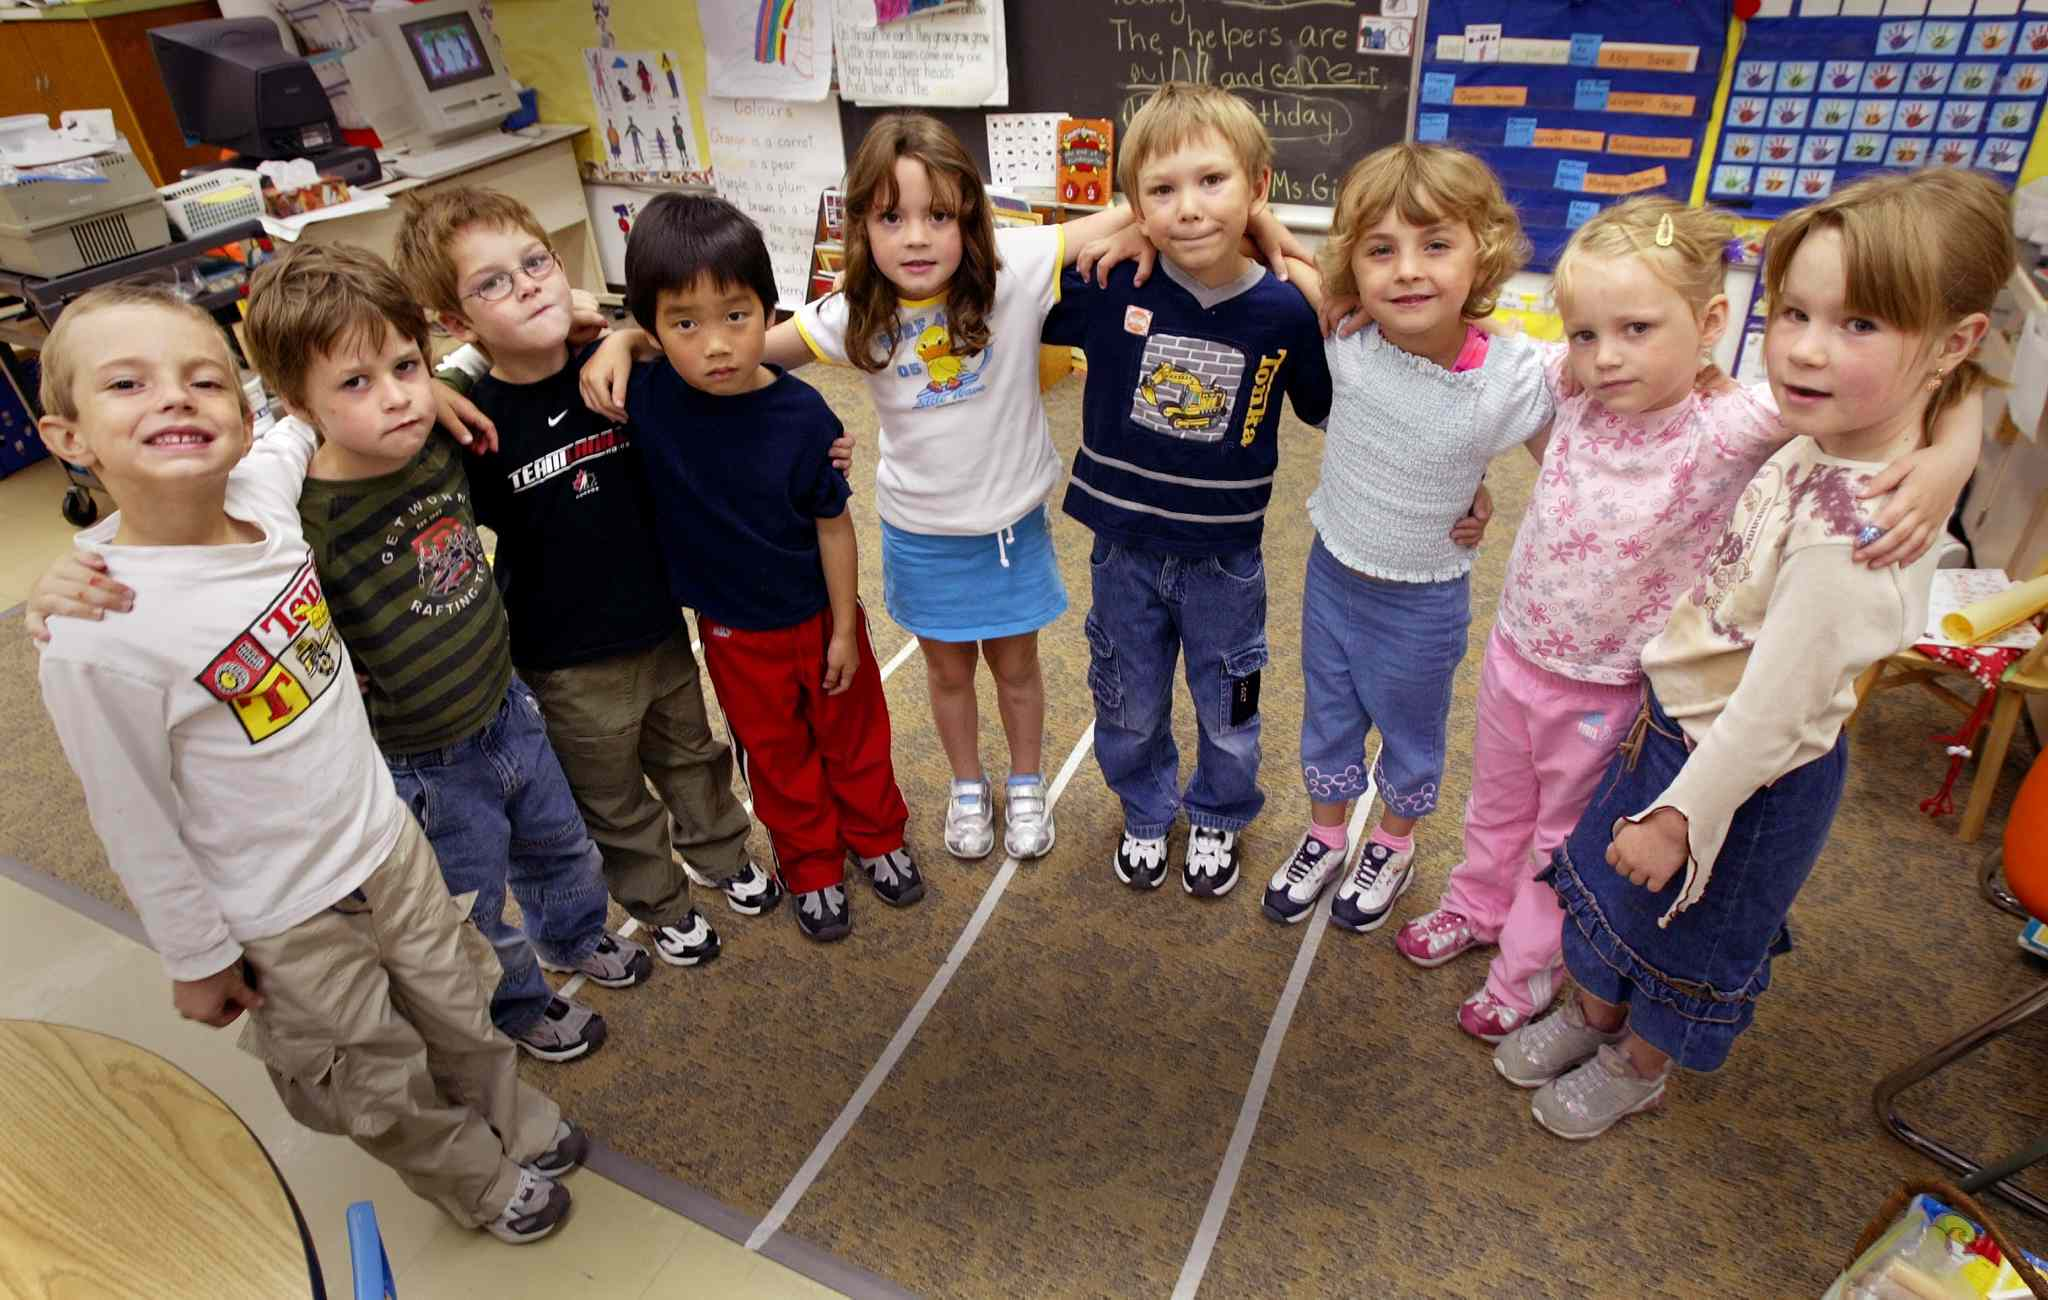 Part of teacher Doris Gietz's kindergarten class at Windsor School (from left) Quinn Mayer, Devon McLeod, Jesse Gibbons, Gabriel Jung, Paige Henwood, Garrett Clarke, Abygale Doerksen, Hailey Harrison and Sarah Orbanski (Joe Bryksa / Winnipeg Free Press)